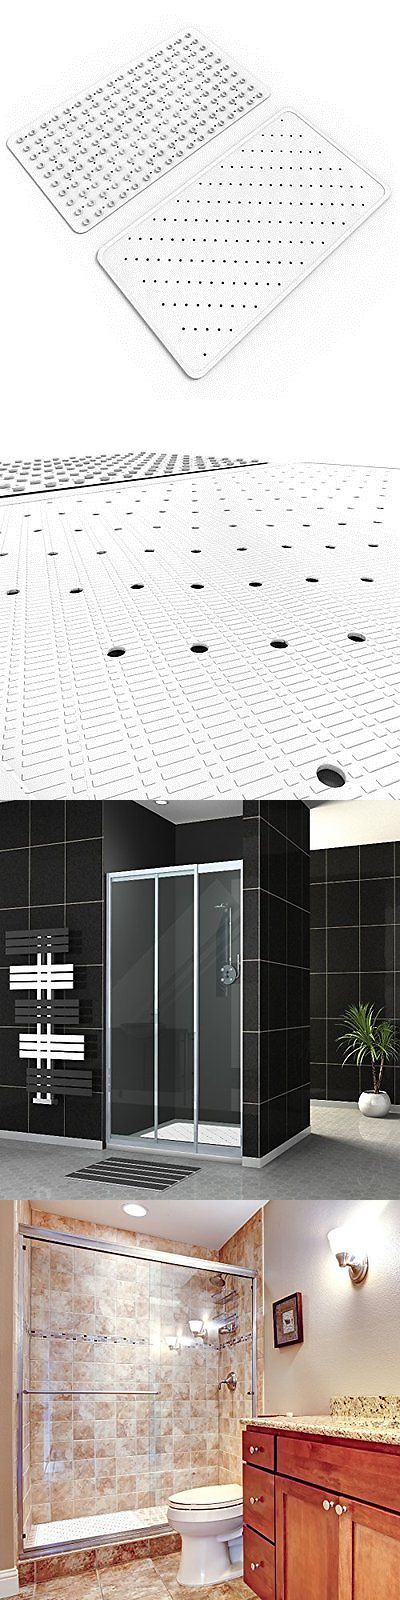 Non-Slip Appliques and Mats 66722: Non Slip Bathtub Mat Saftey Shower Floor Rubber 150 Suction Cups Antibacterial -> BUY IT NOW ONLY: $58.12 on eBay!